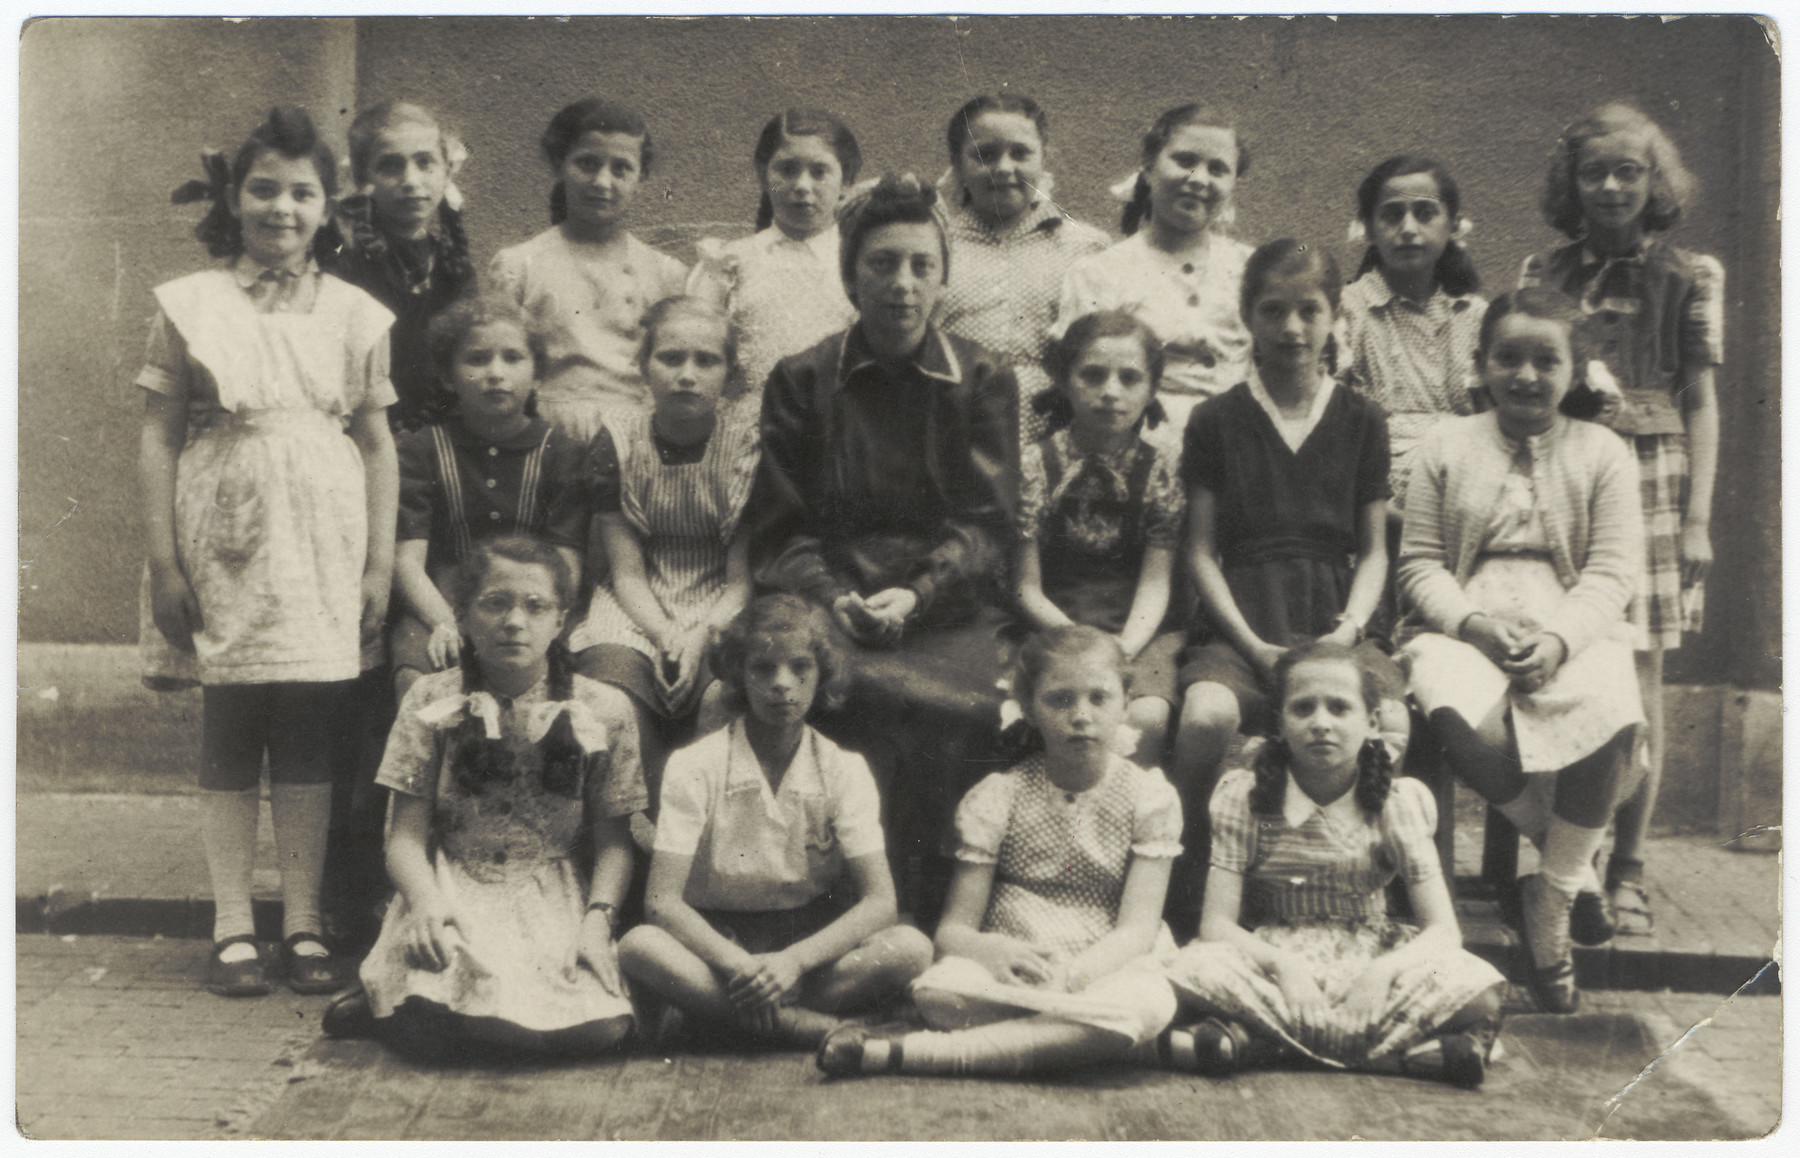 Class portrait of the Kazinczy Schul, a religious elementary school housed in the Orthodox synagogue in Budapest.